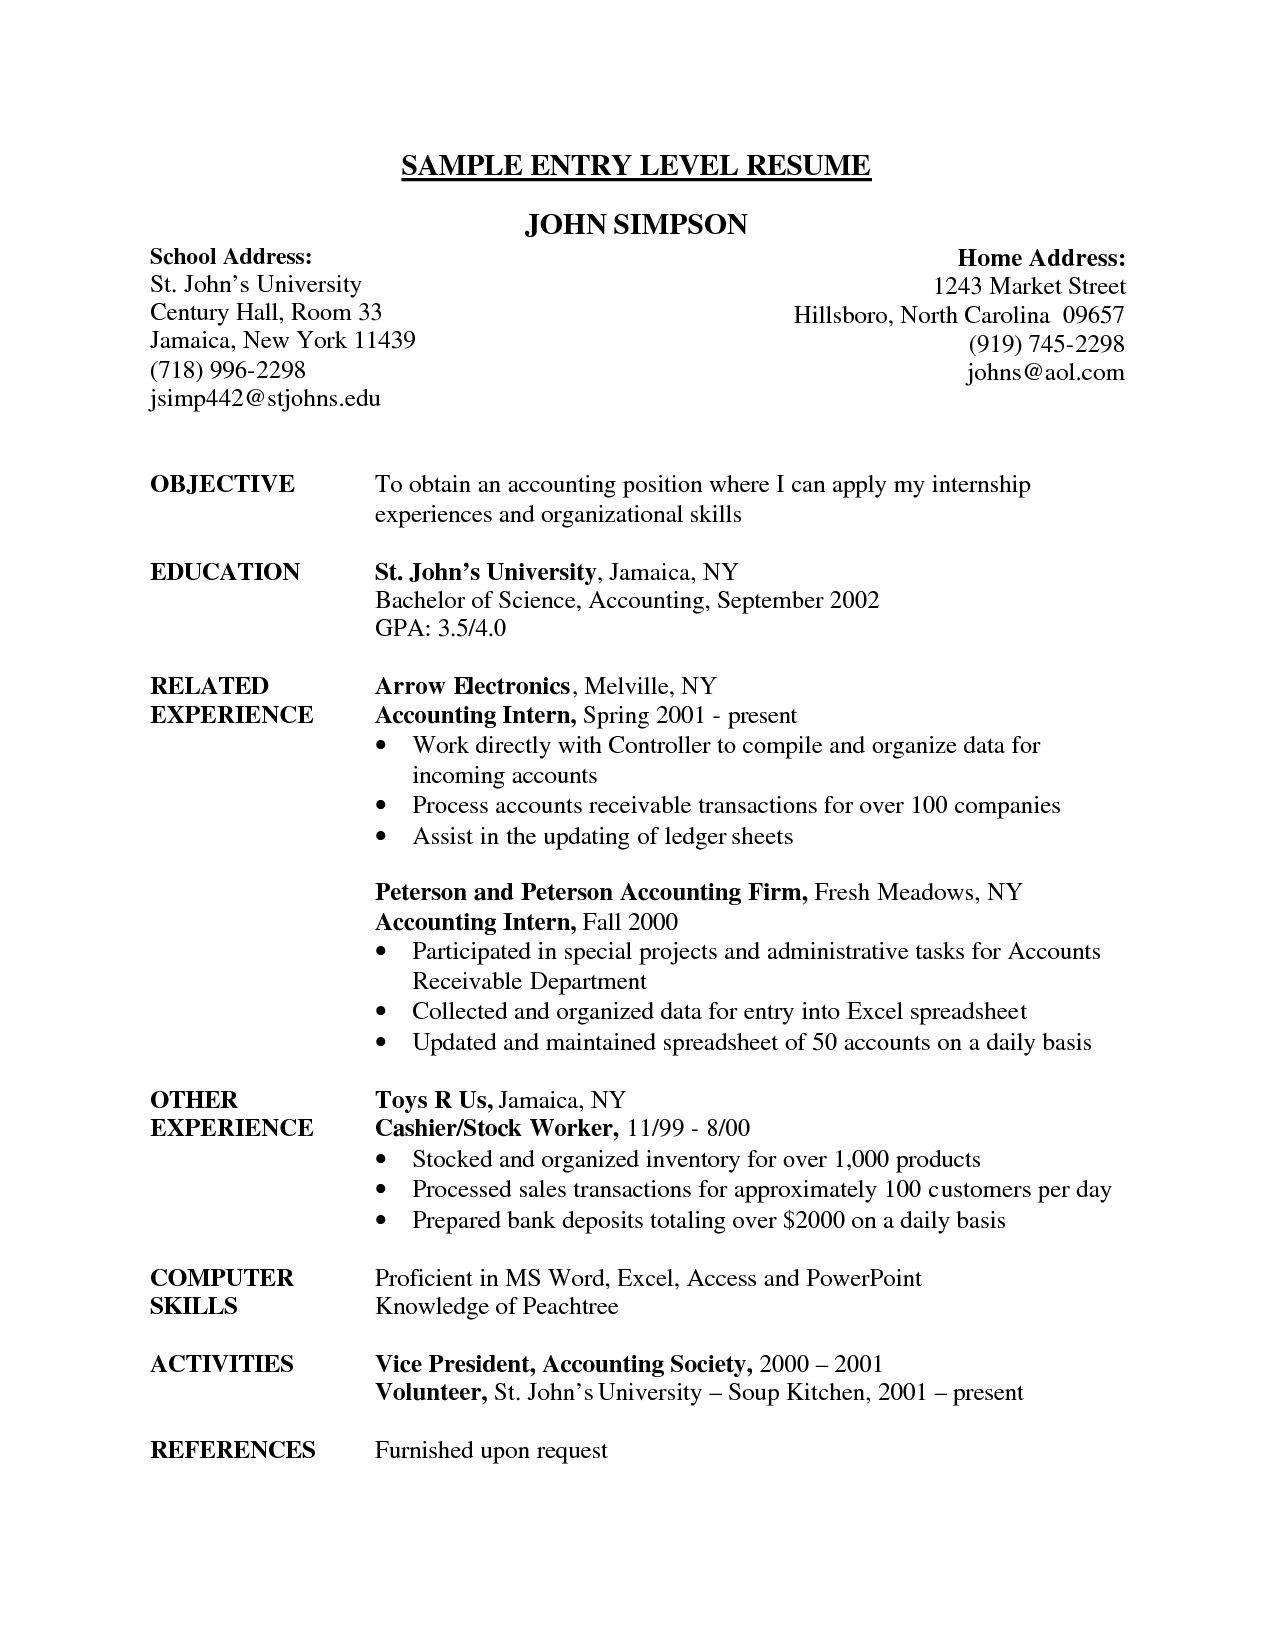 Accounting Internship Resume Objective Impressive Resume Examples Entry Level  Resume Examples  Pinterest  Resume .